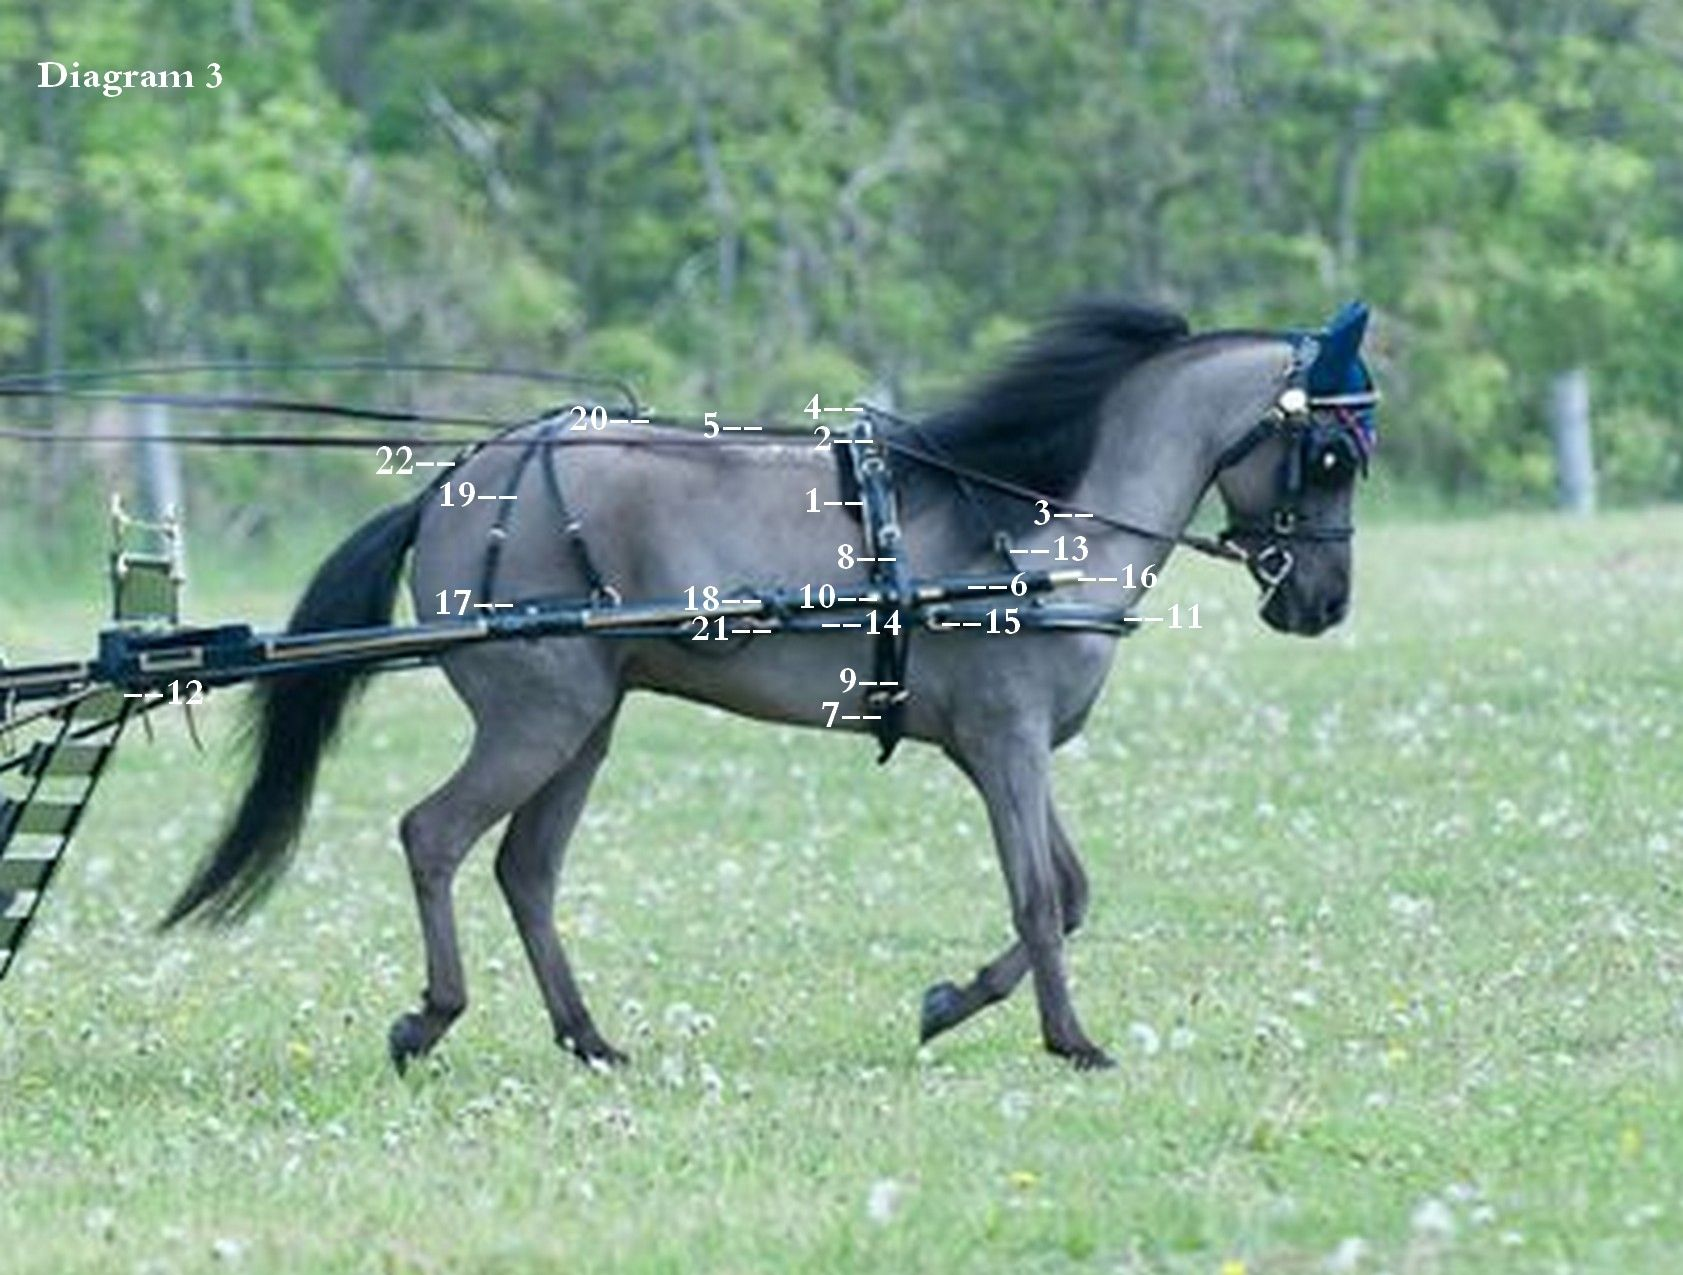 hight resolution of the miniature horse harness ozarkcanada horse harness harness racing miniature shetland pony